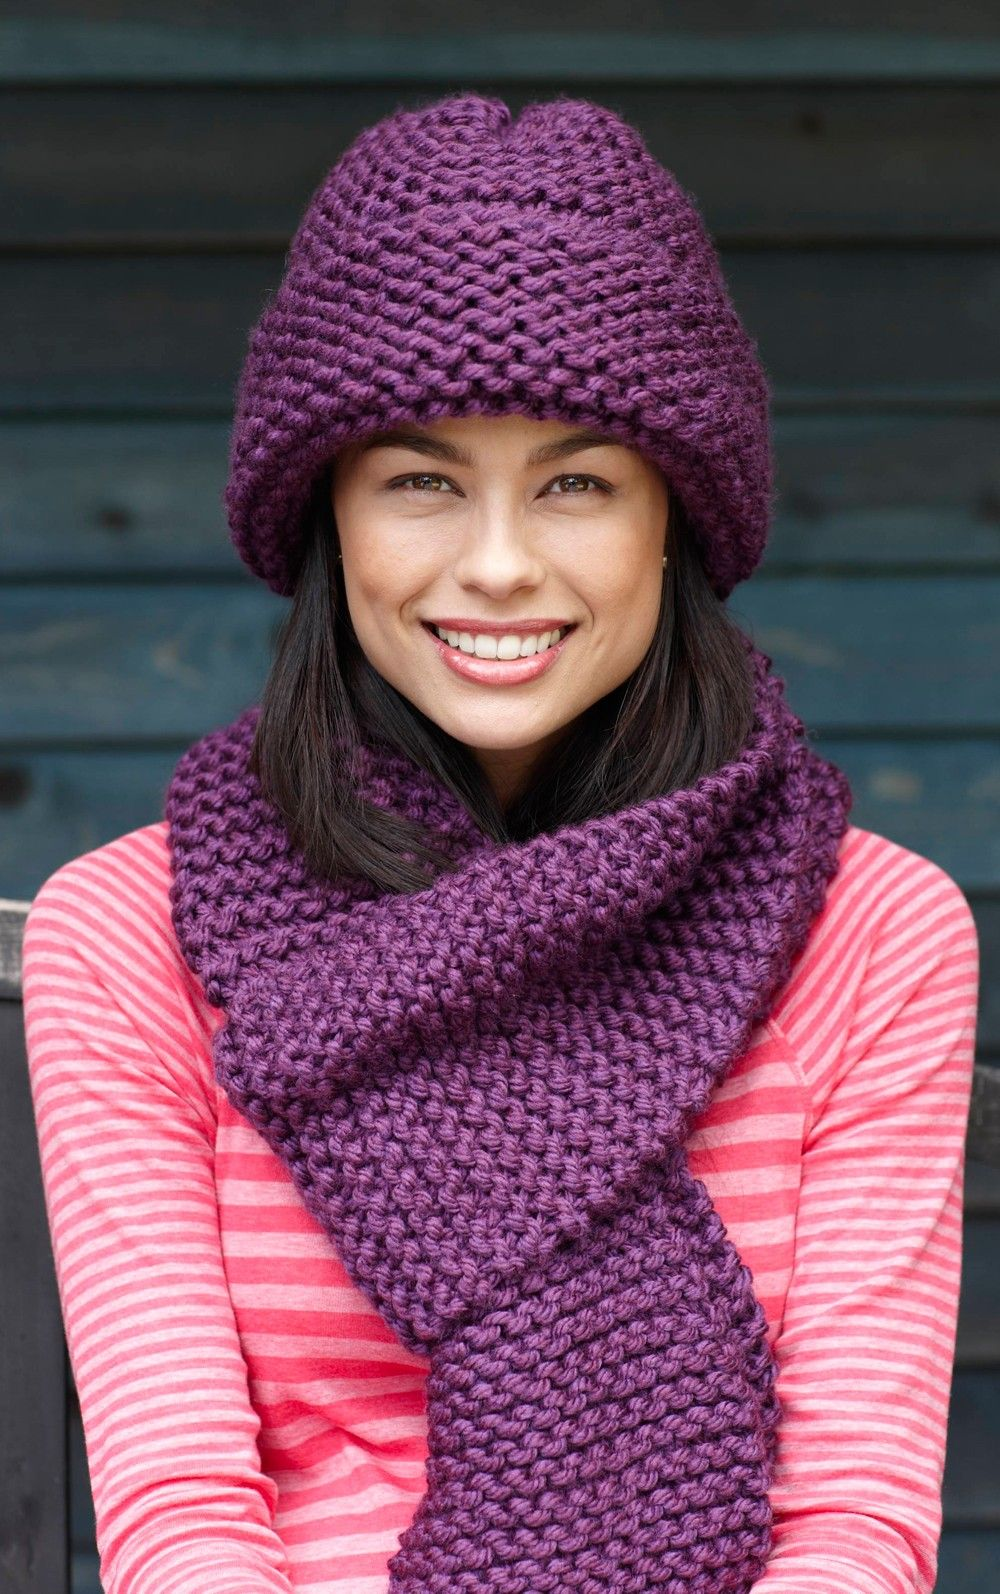 Beginner Hat and Scarf (Knit)   Knitting - scarves   Pinterest ...